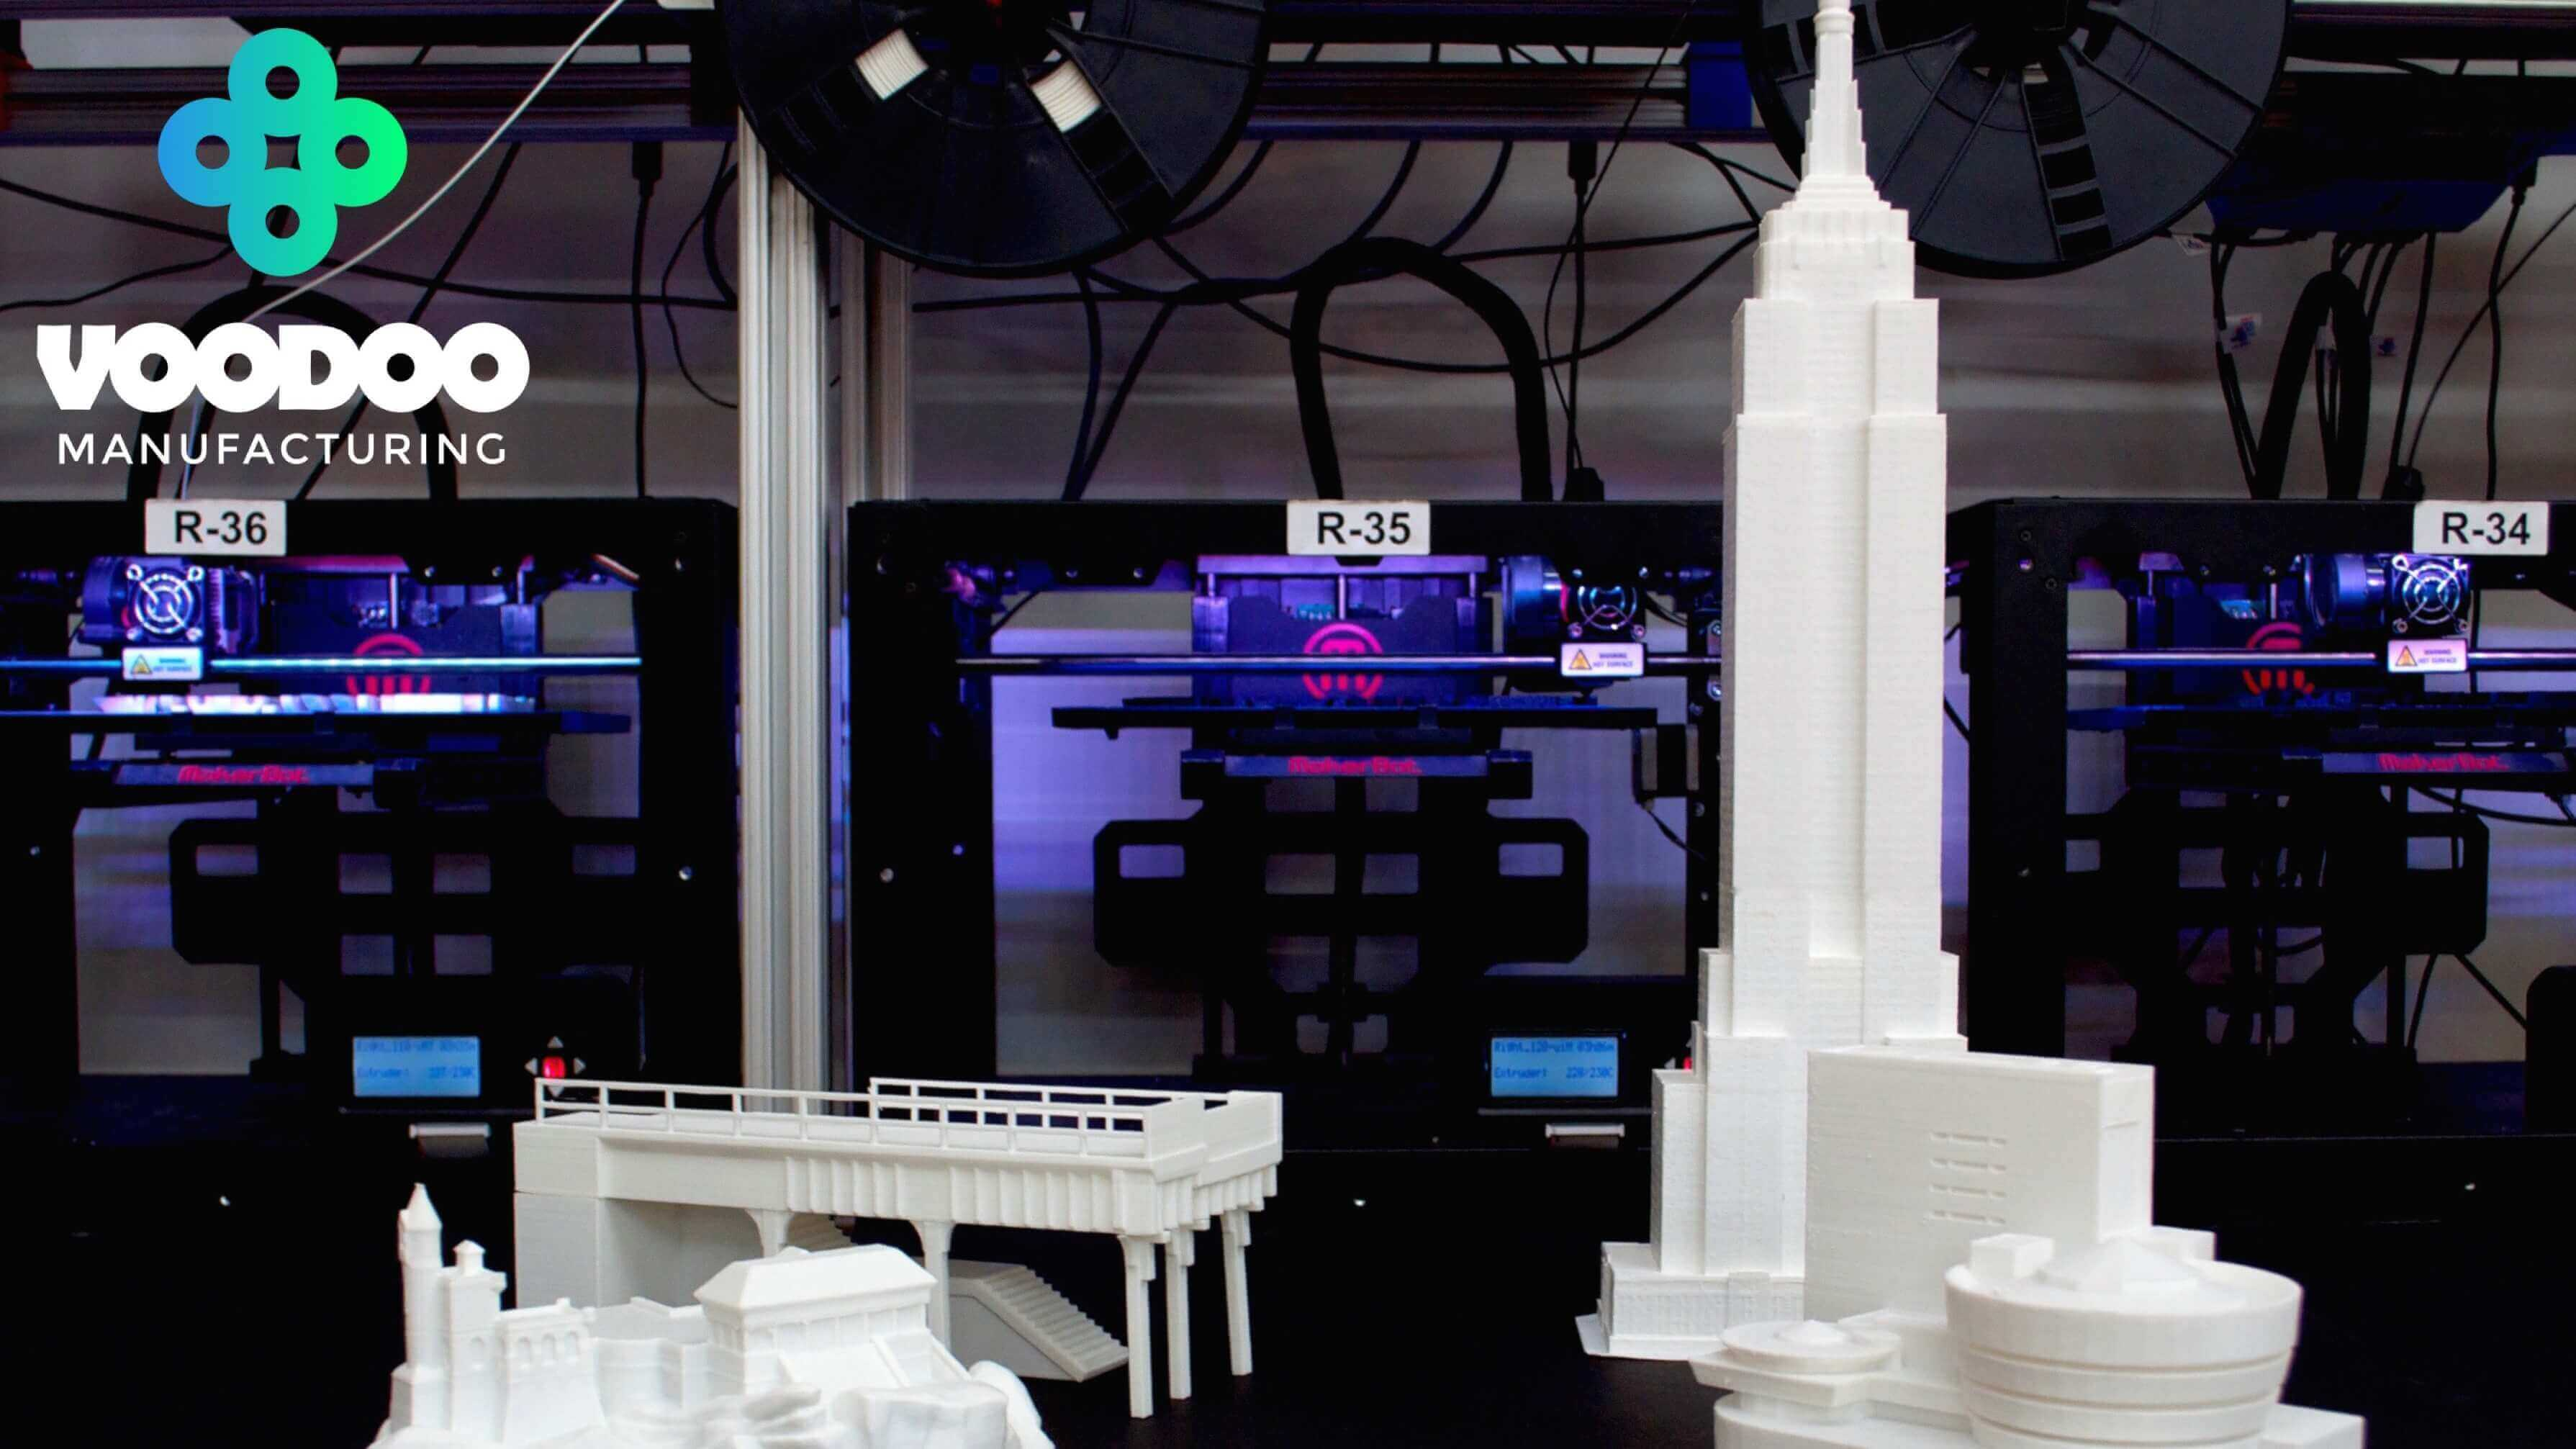 Wide Open Arts: Your 3D Printed Tower Could be Exhibited in NYC | All3DP